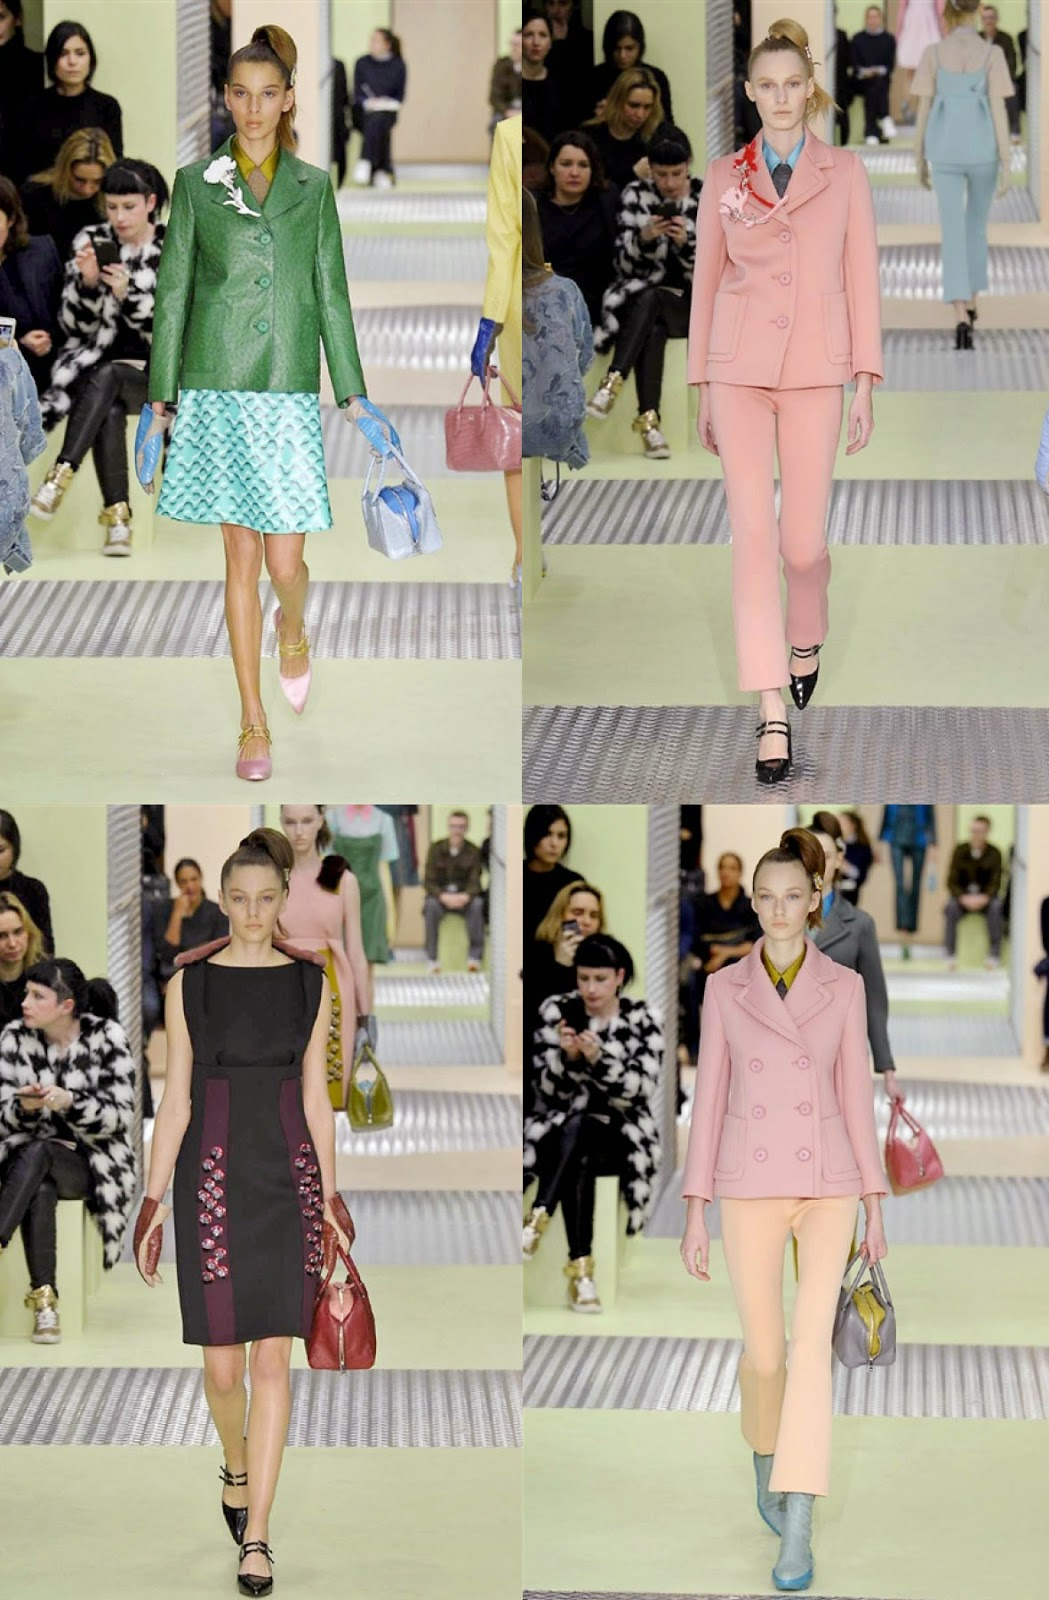 Eniwhere Fashion - Milano Fashion Week - Prada - Fall Winter 2015-2016